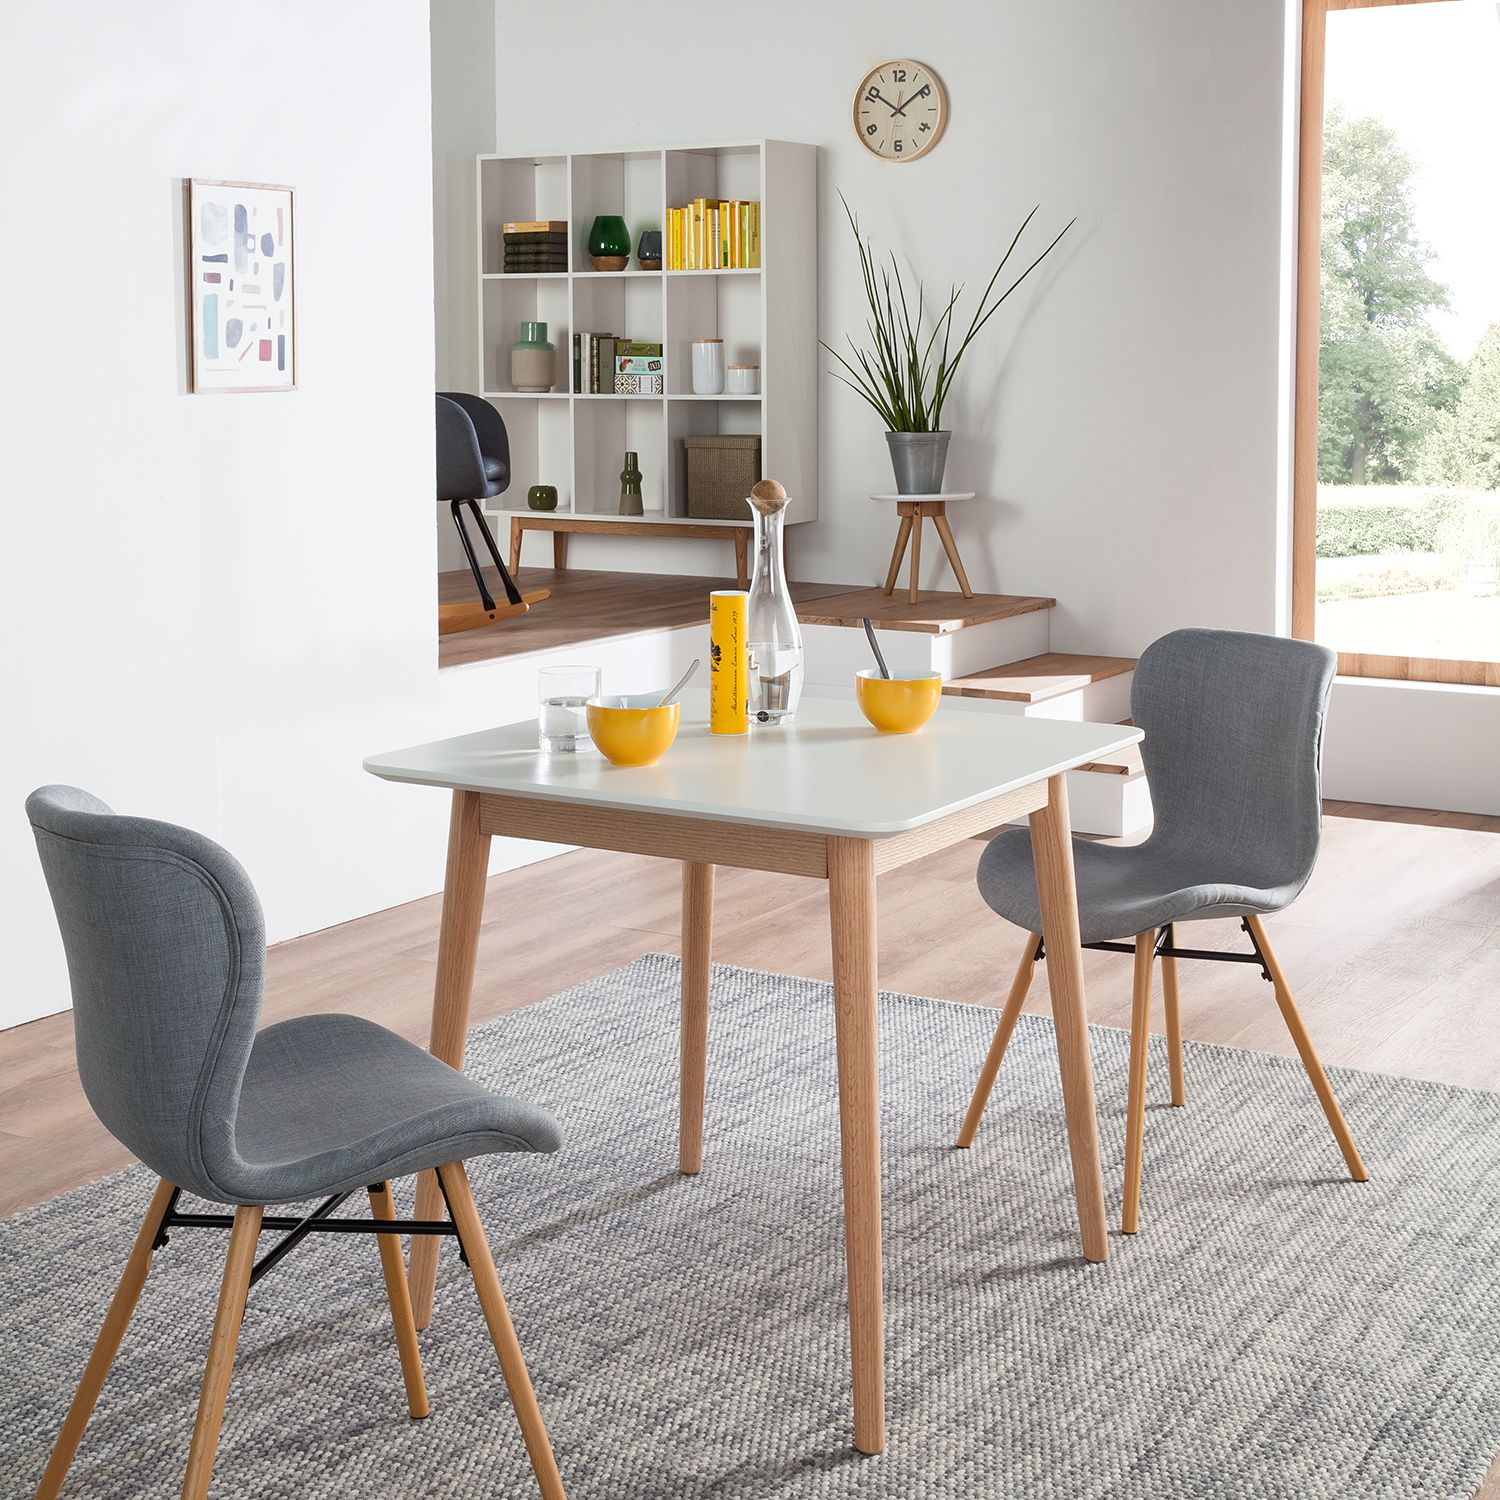 Photo of Lindholm III dining table